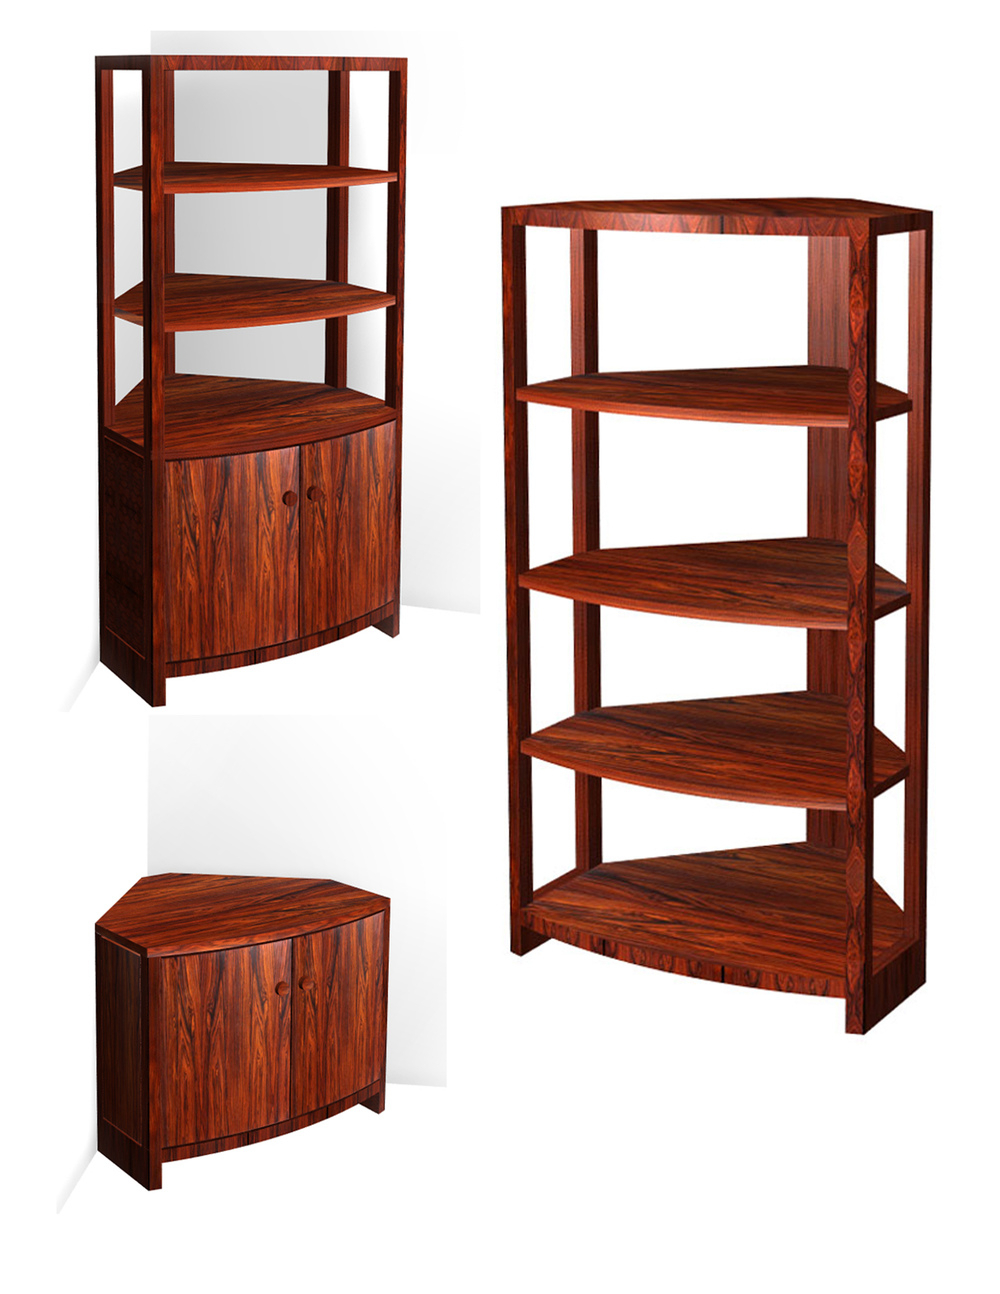 Recent Bright Ideas Corner Furniture Pieces Of Small For – Safari Throughout Fuhrmann Corner Bookcases (View 17 of 20)